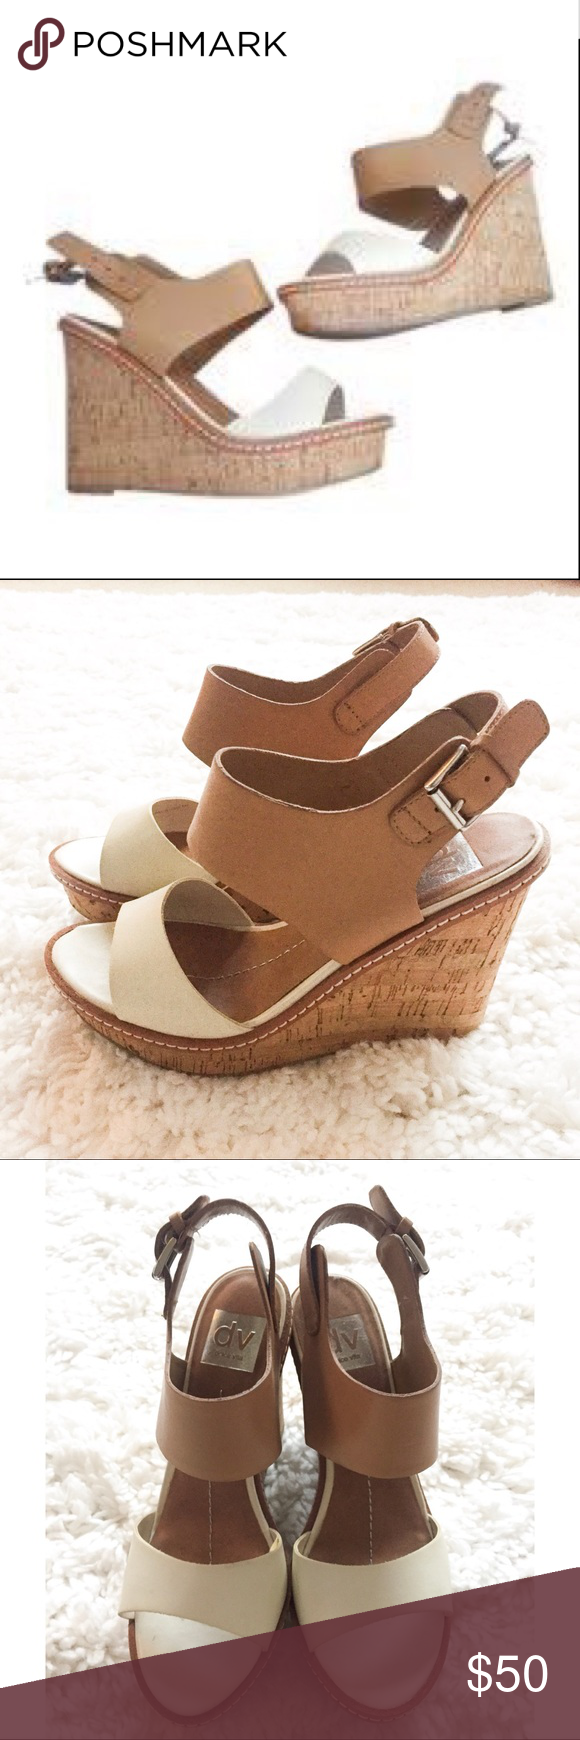 Dolce Vita Cork Wedges White and Brown